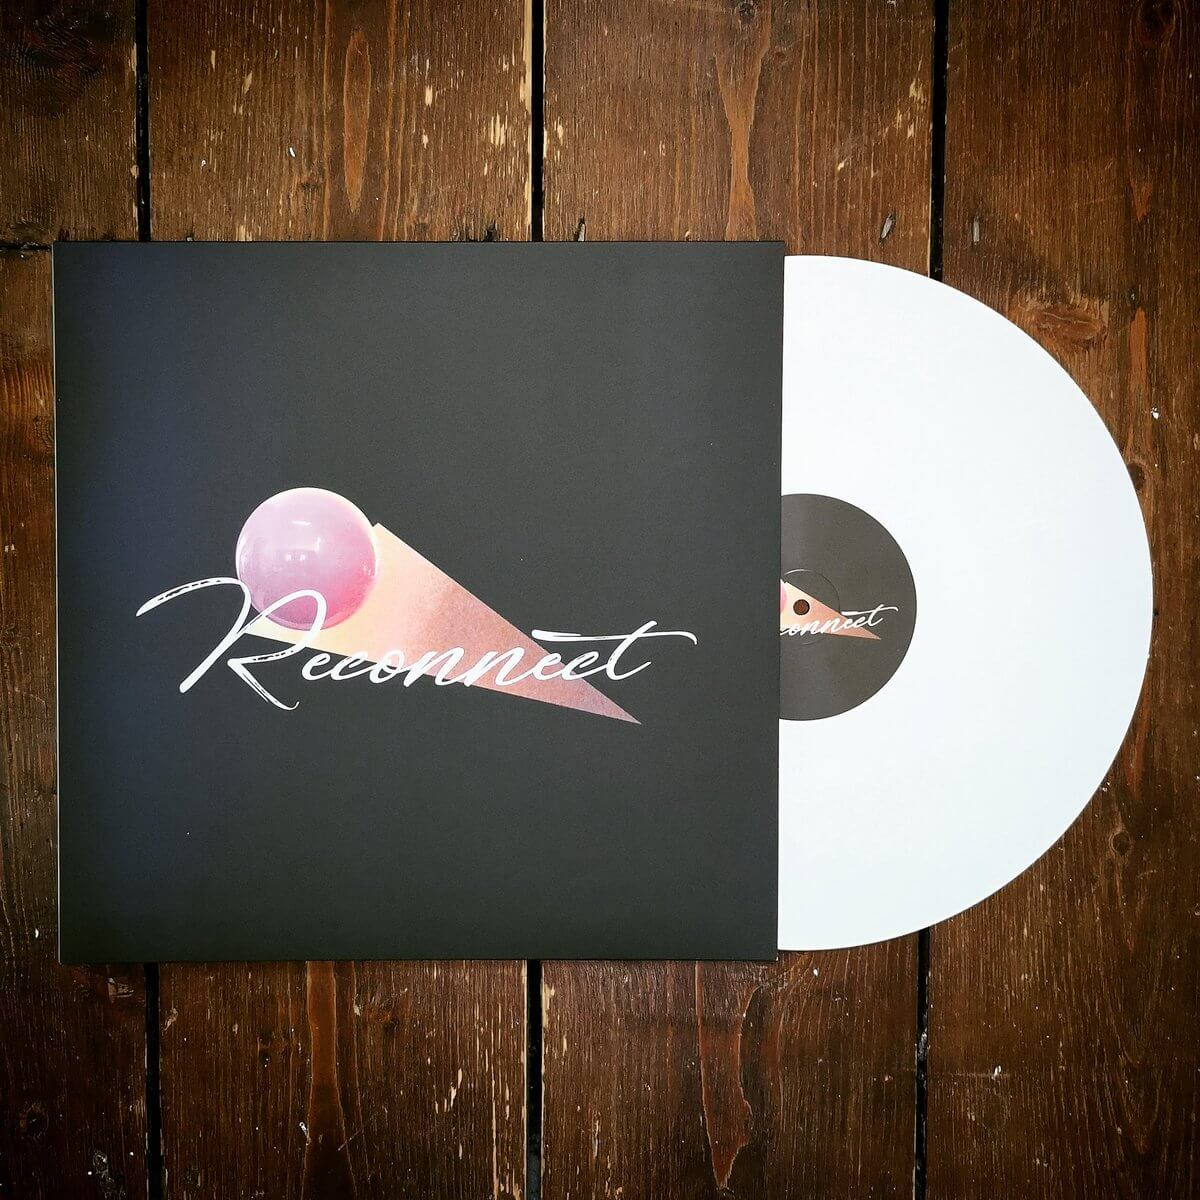 Barbwalters – Reconnect (vinyl)